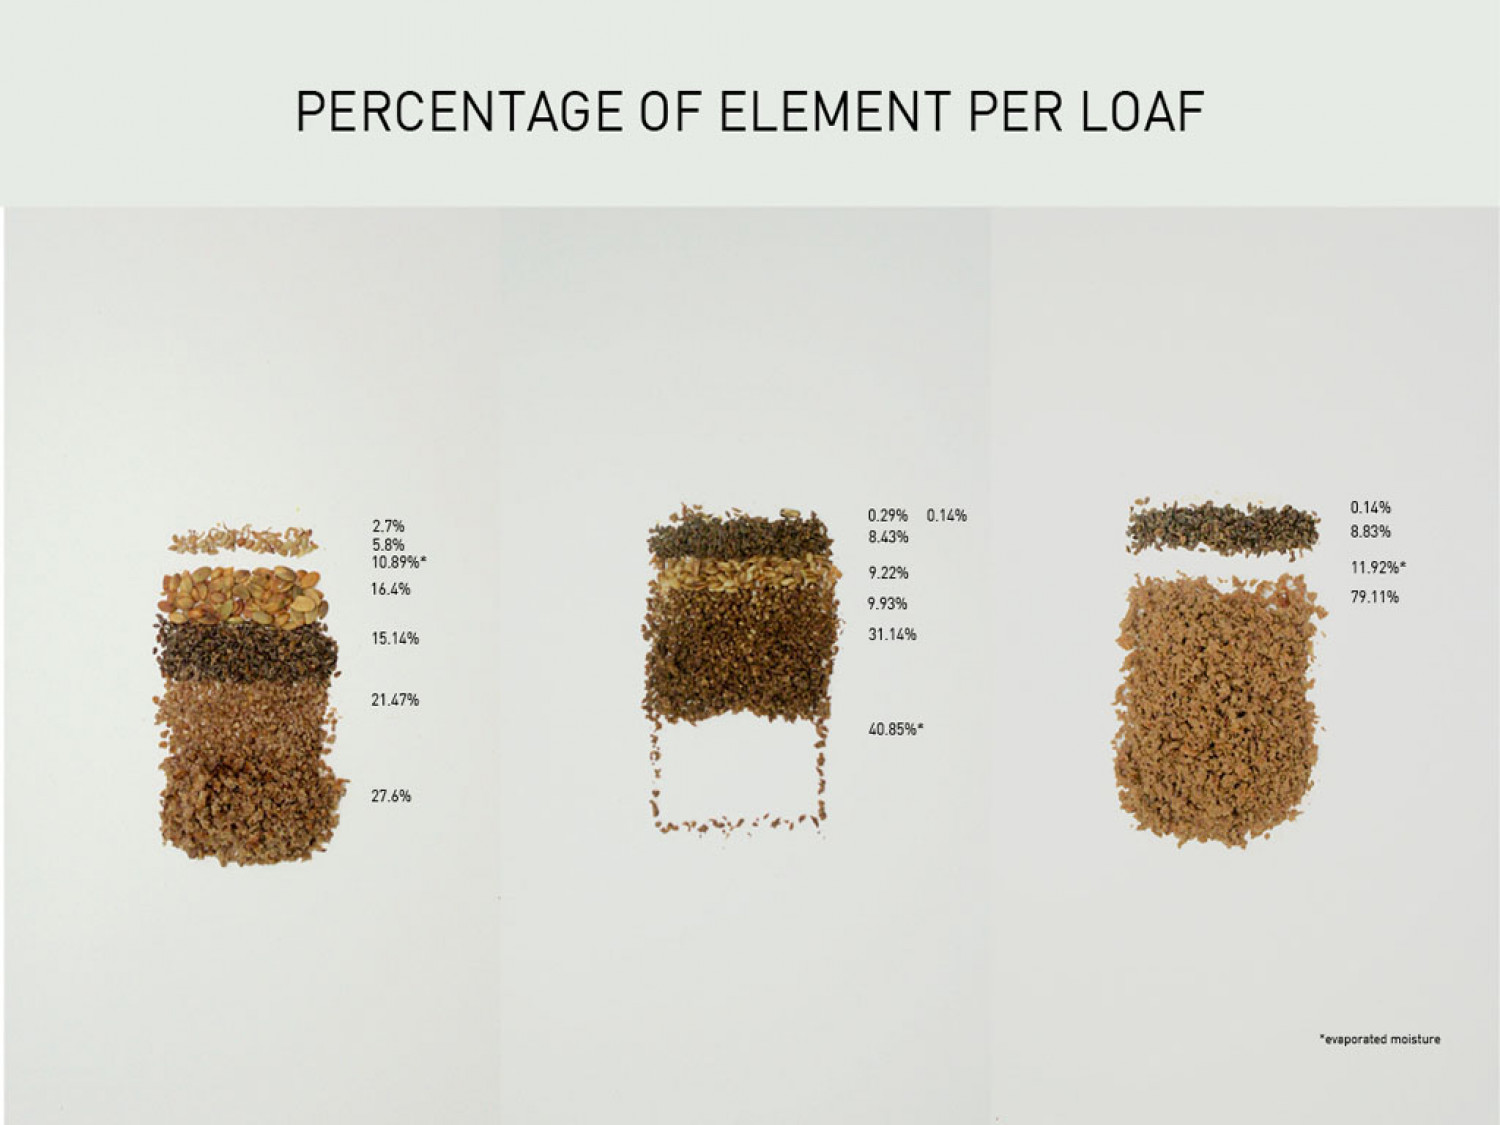 Danish Rye Bread: Percentage of Element Per Loaf Infographic